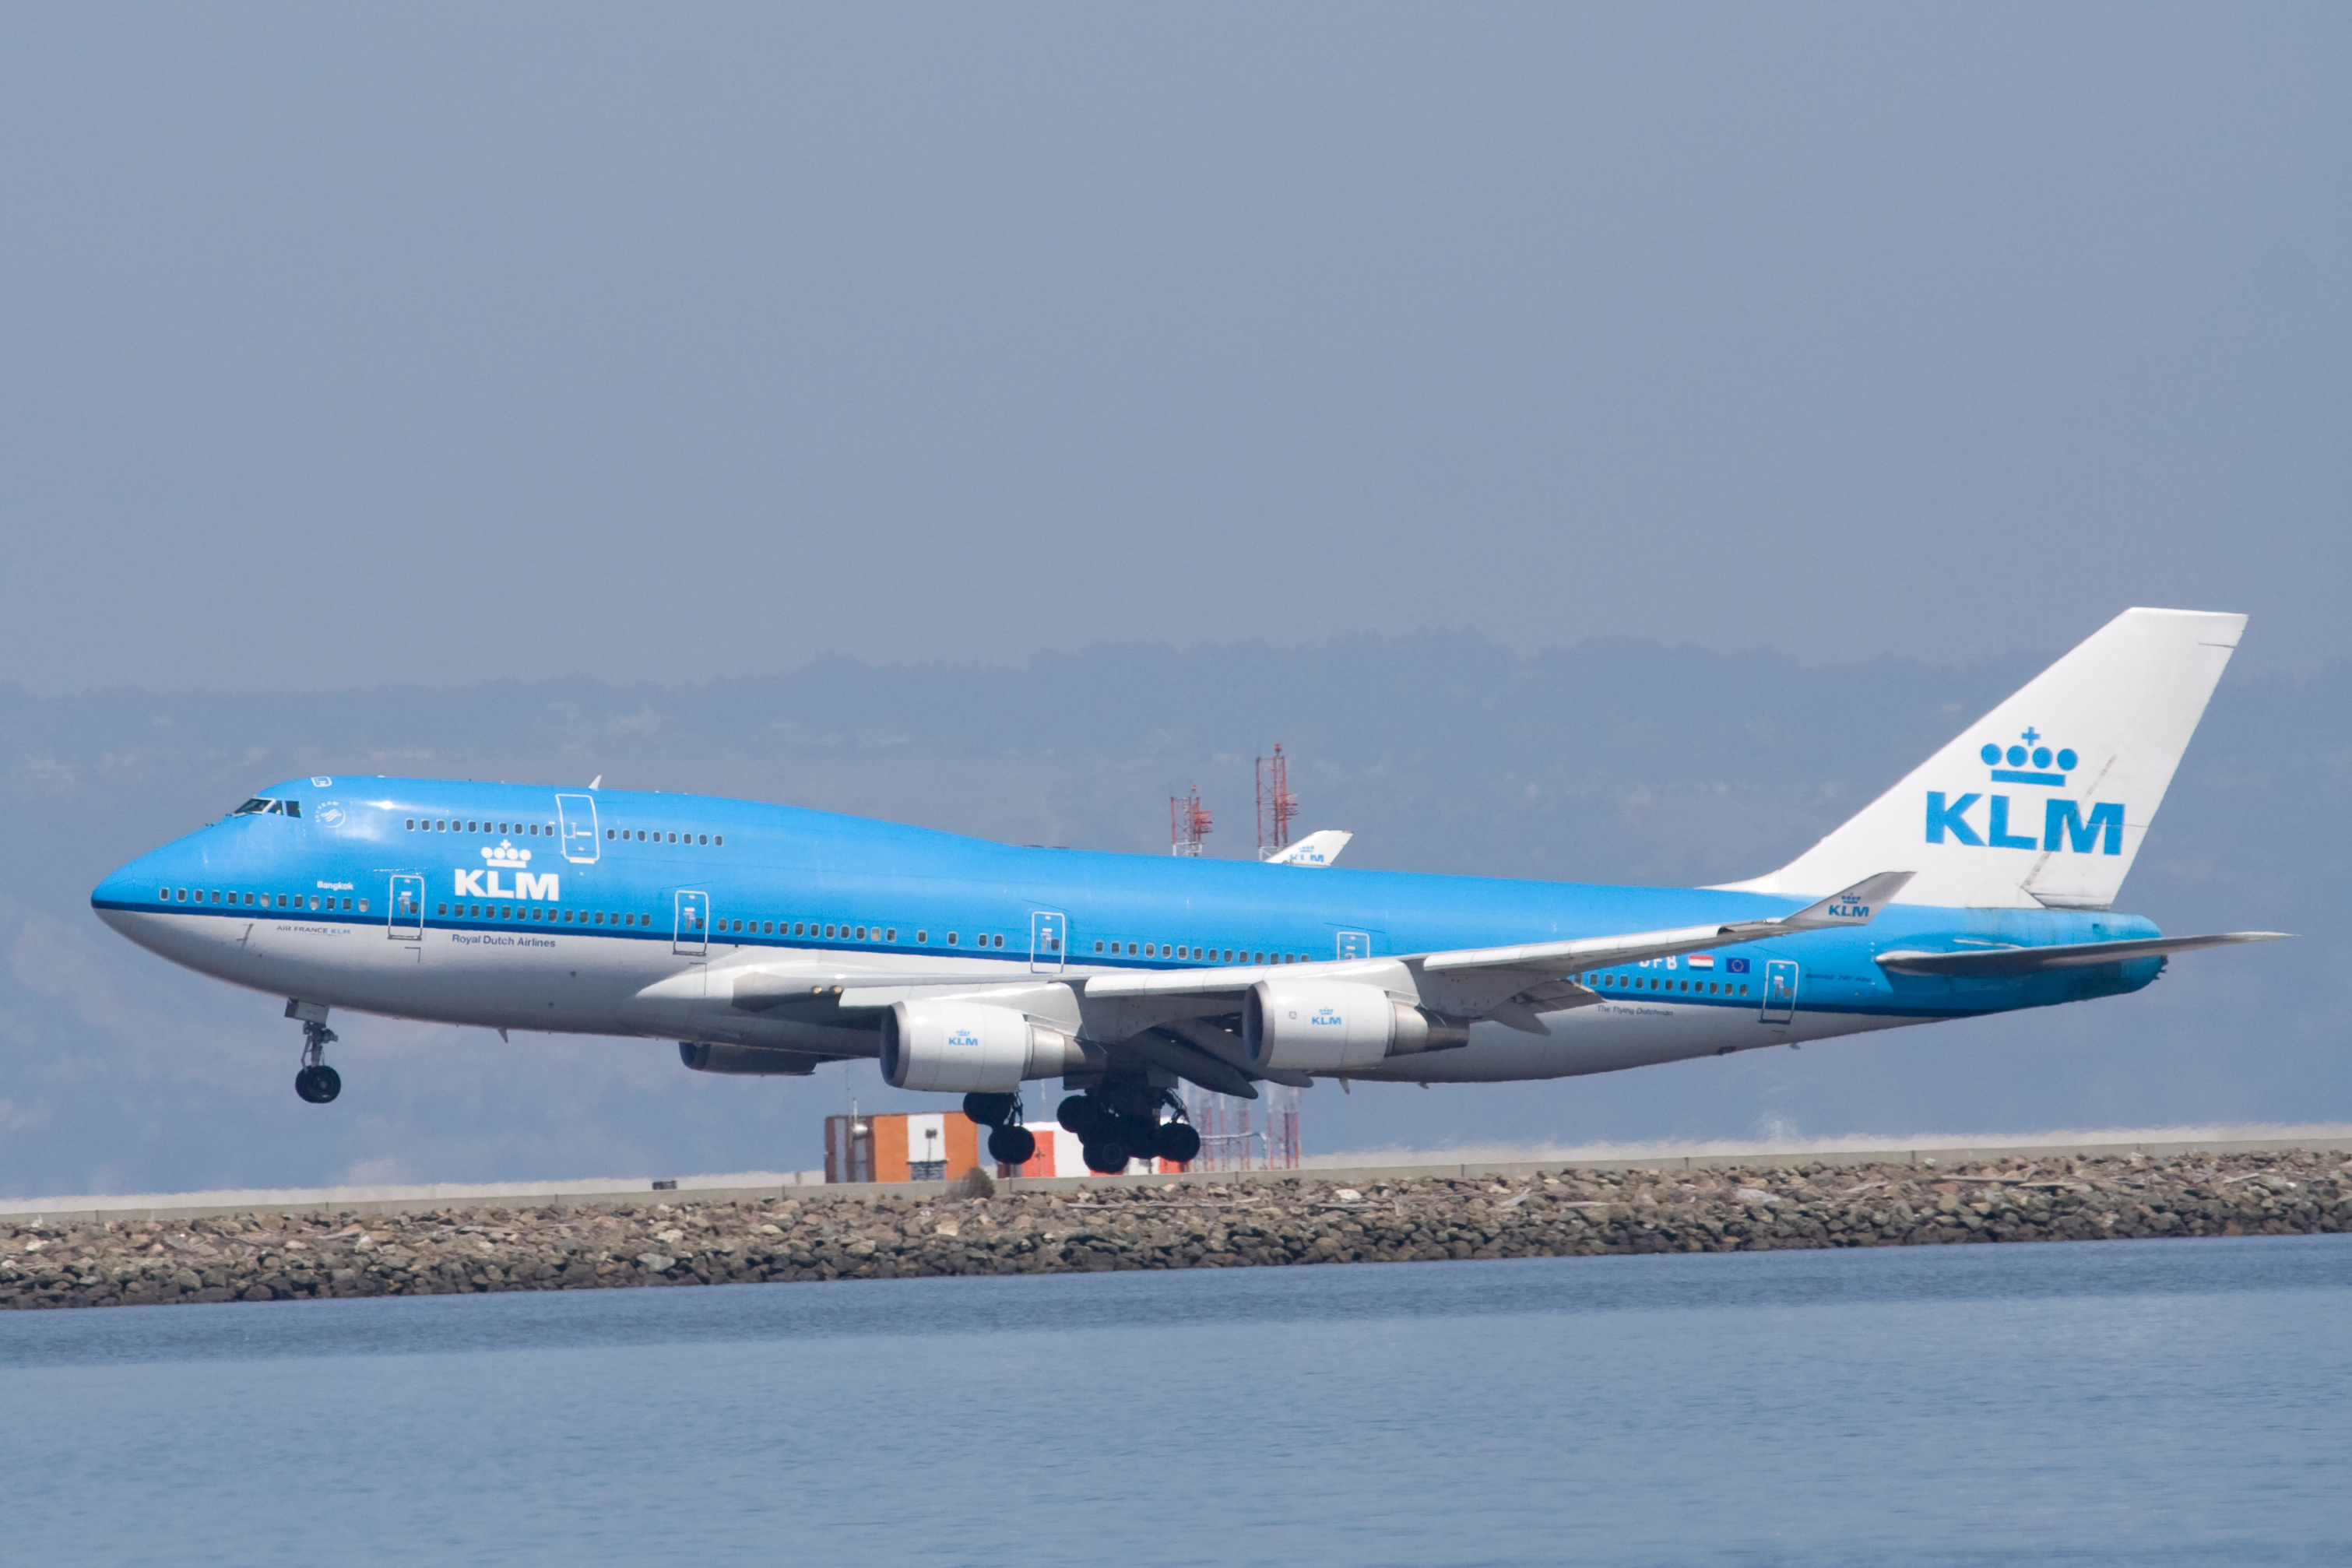 File:A KLM Boeing 747-400 landing at SFO.jpg - Wikimedia Commons